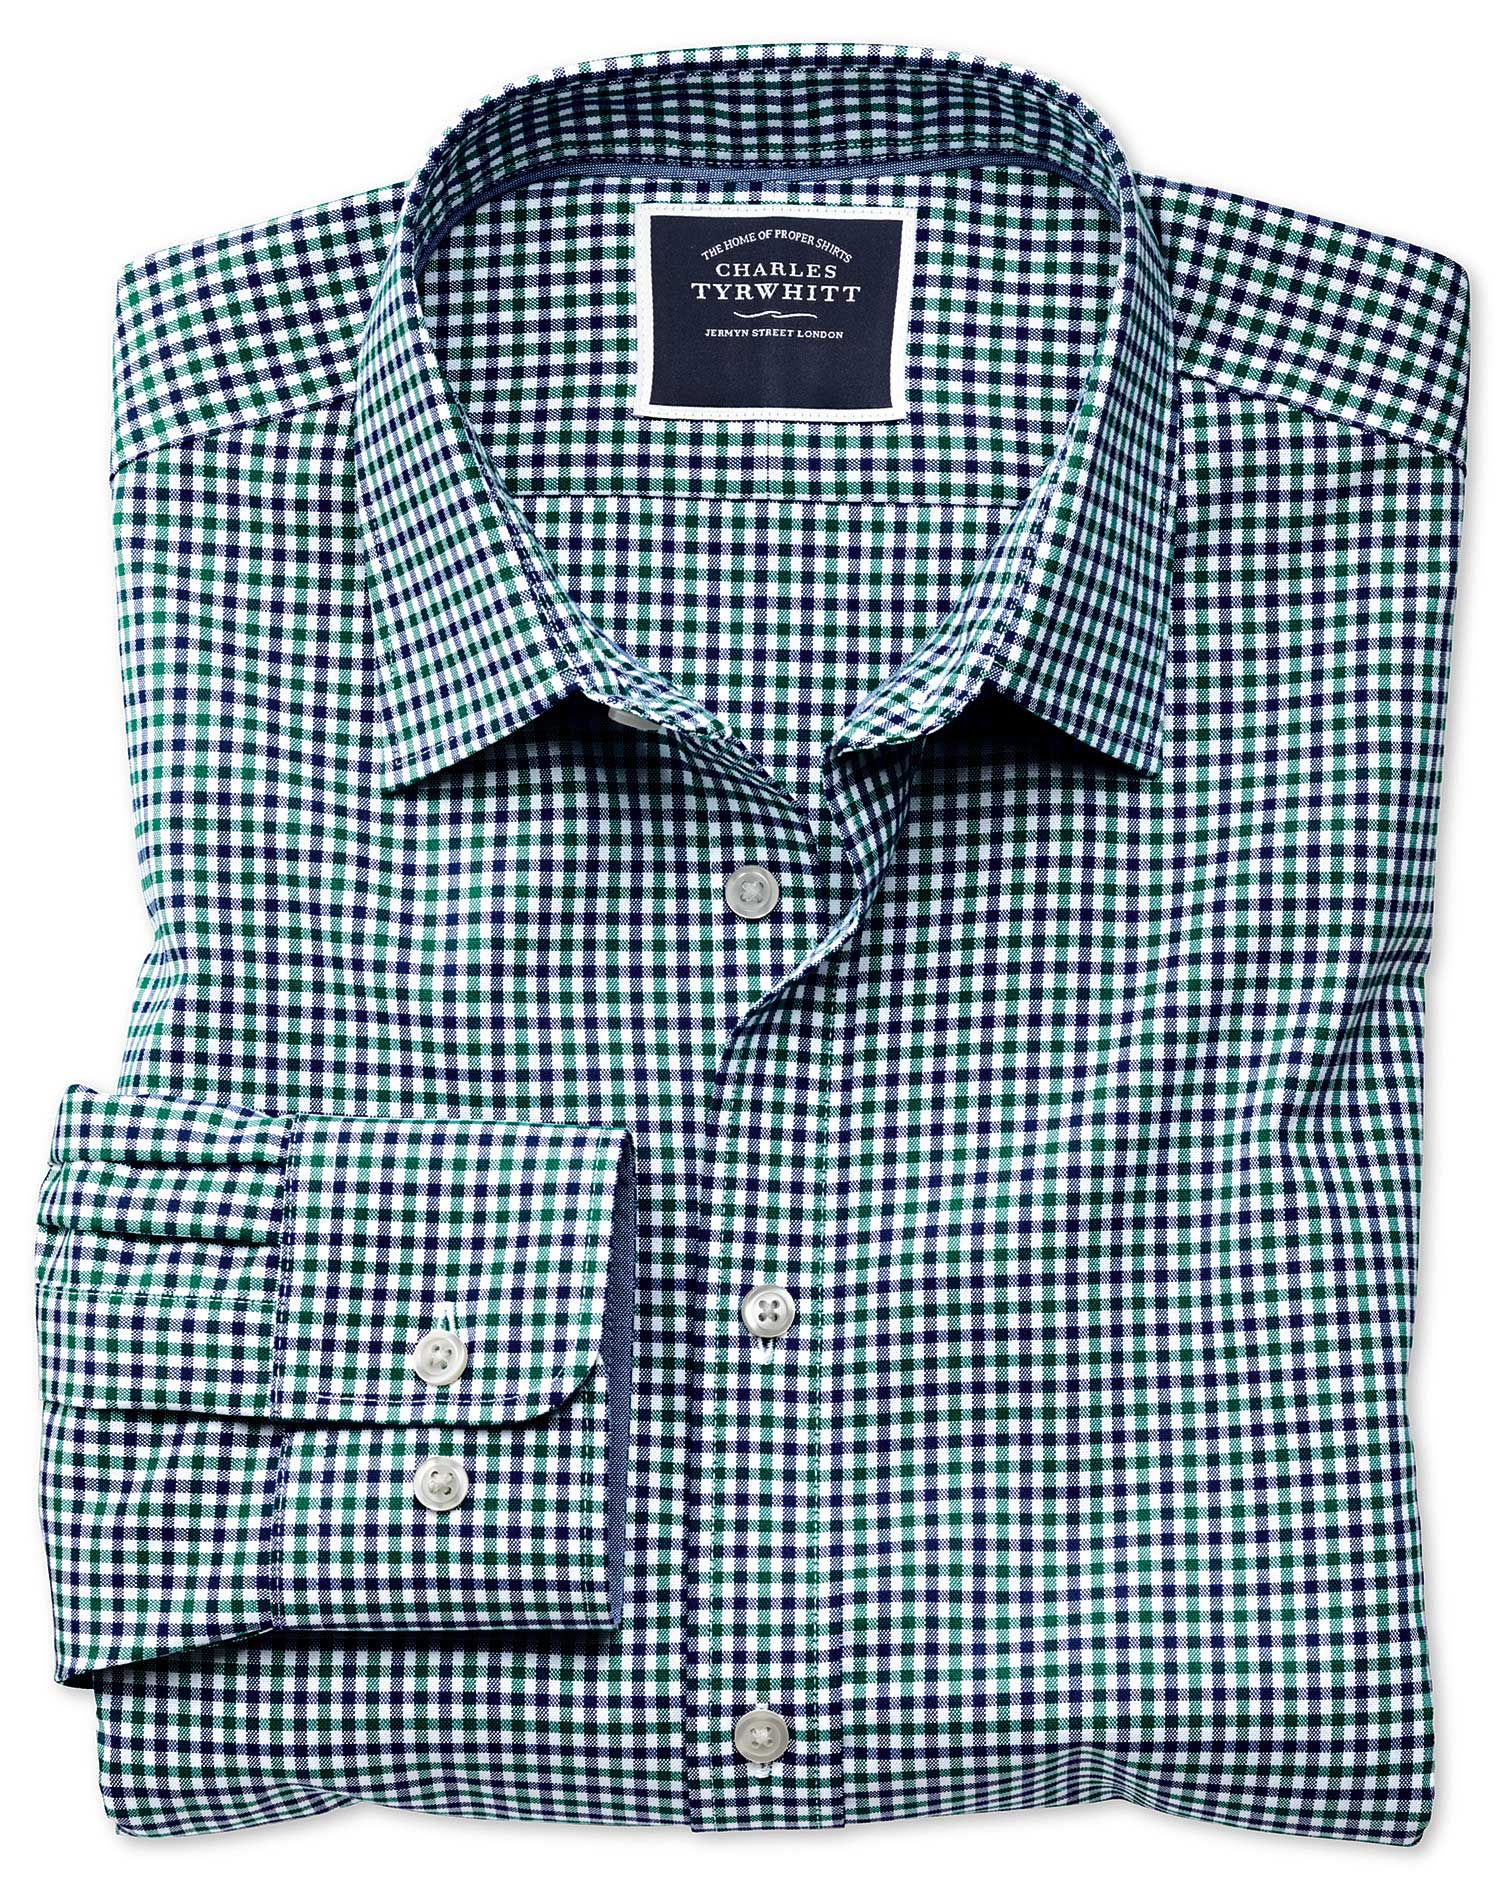 Classic Fit Non-Iron Green and Blue Gingham Oxford Cotton Shirt Single Cuff Size Large by Charles Ty